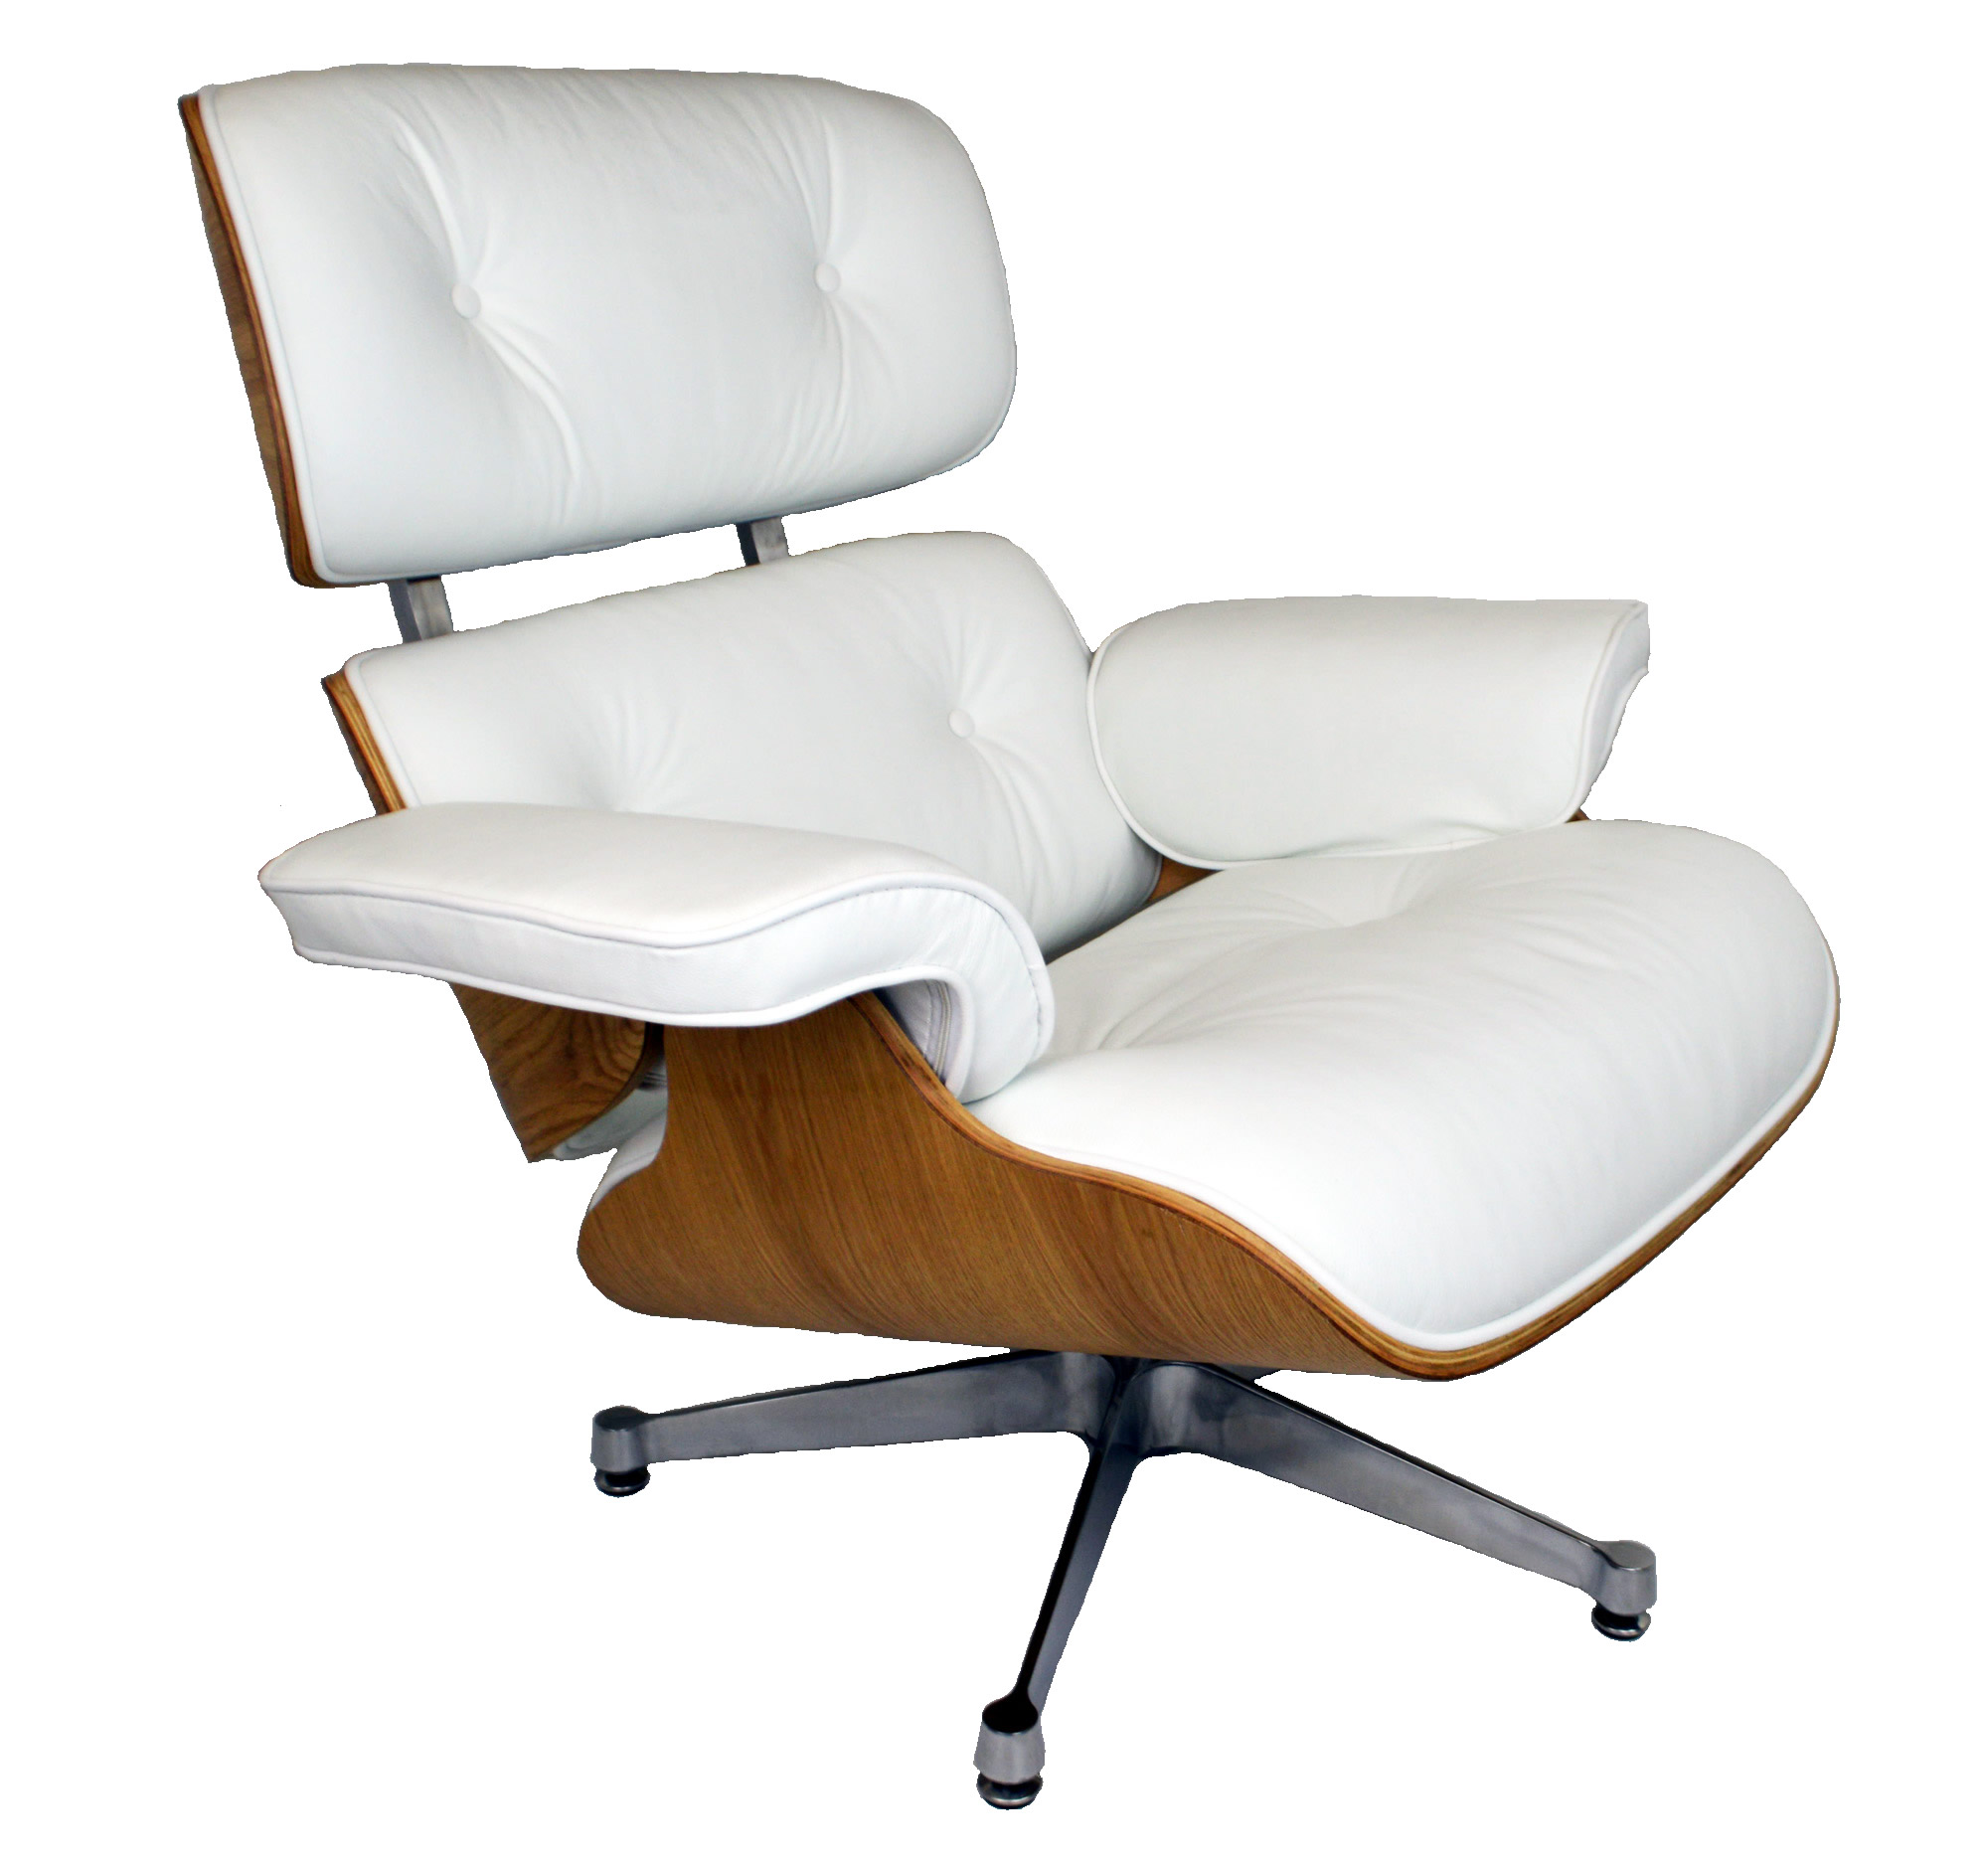 Chair Eames Charles Eames Lounge Chair Ashwood White Leather - Charles Eames